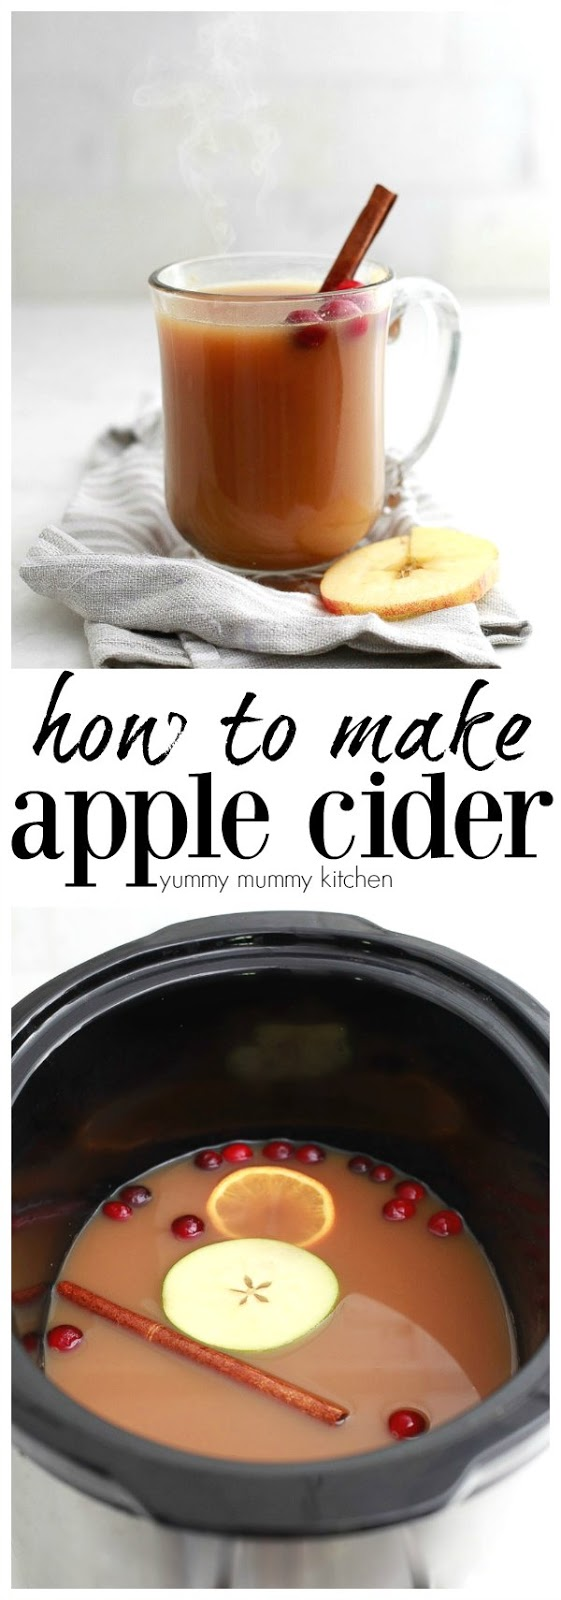 Find out how to make natural apple cider with this easy recipe! Make apple cider in the slow cooker or stovetop.